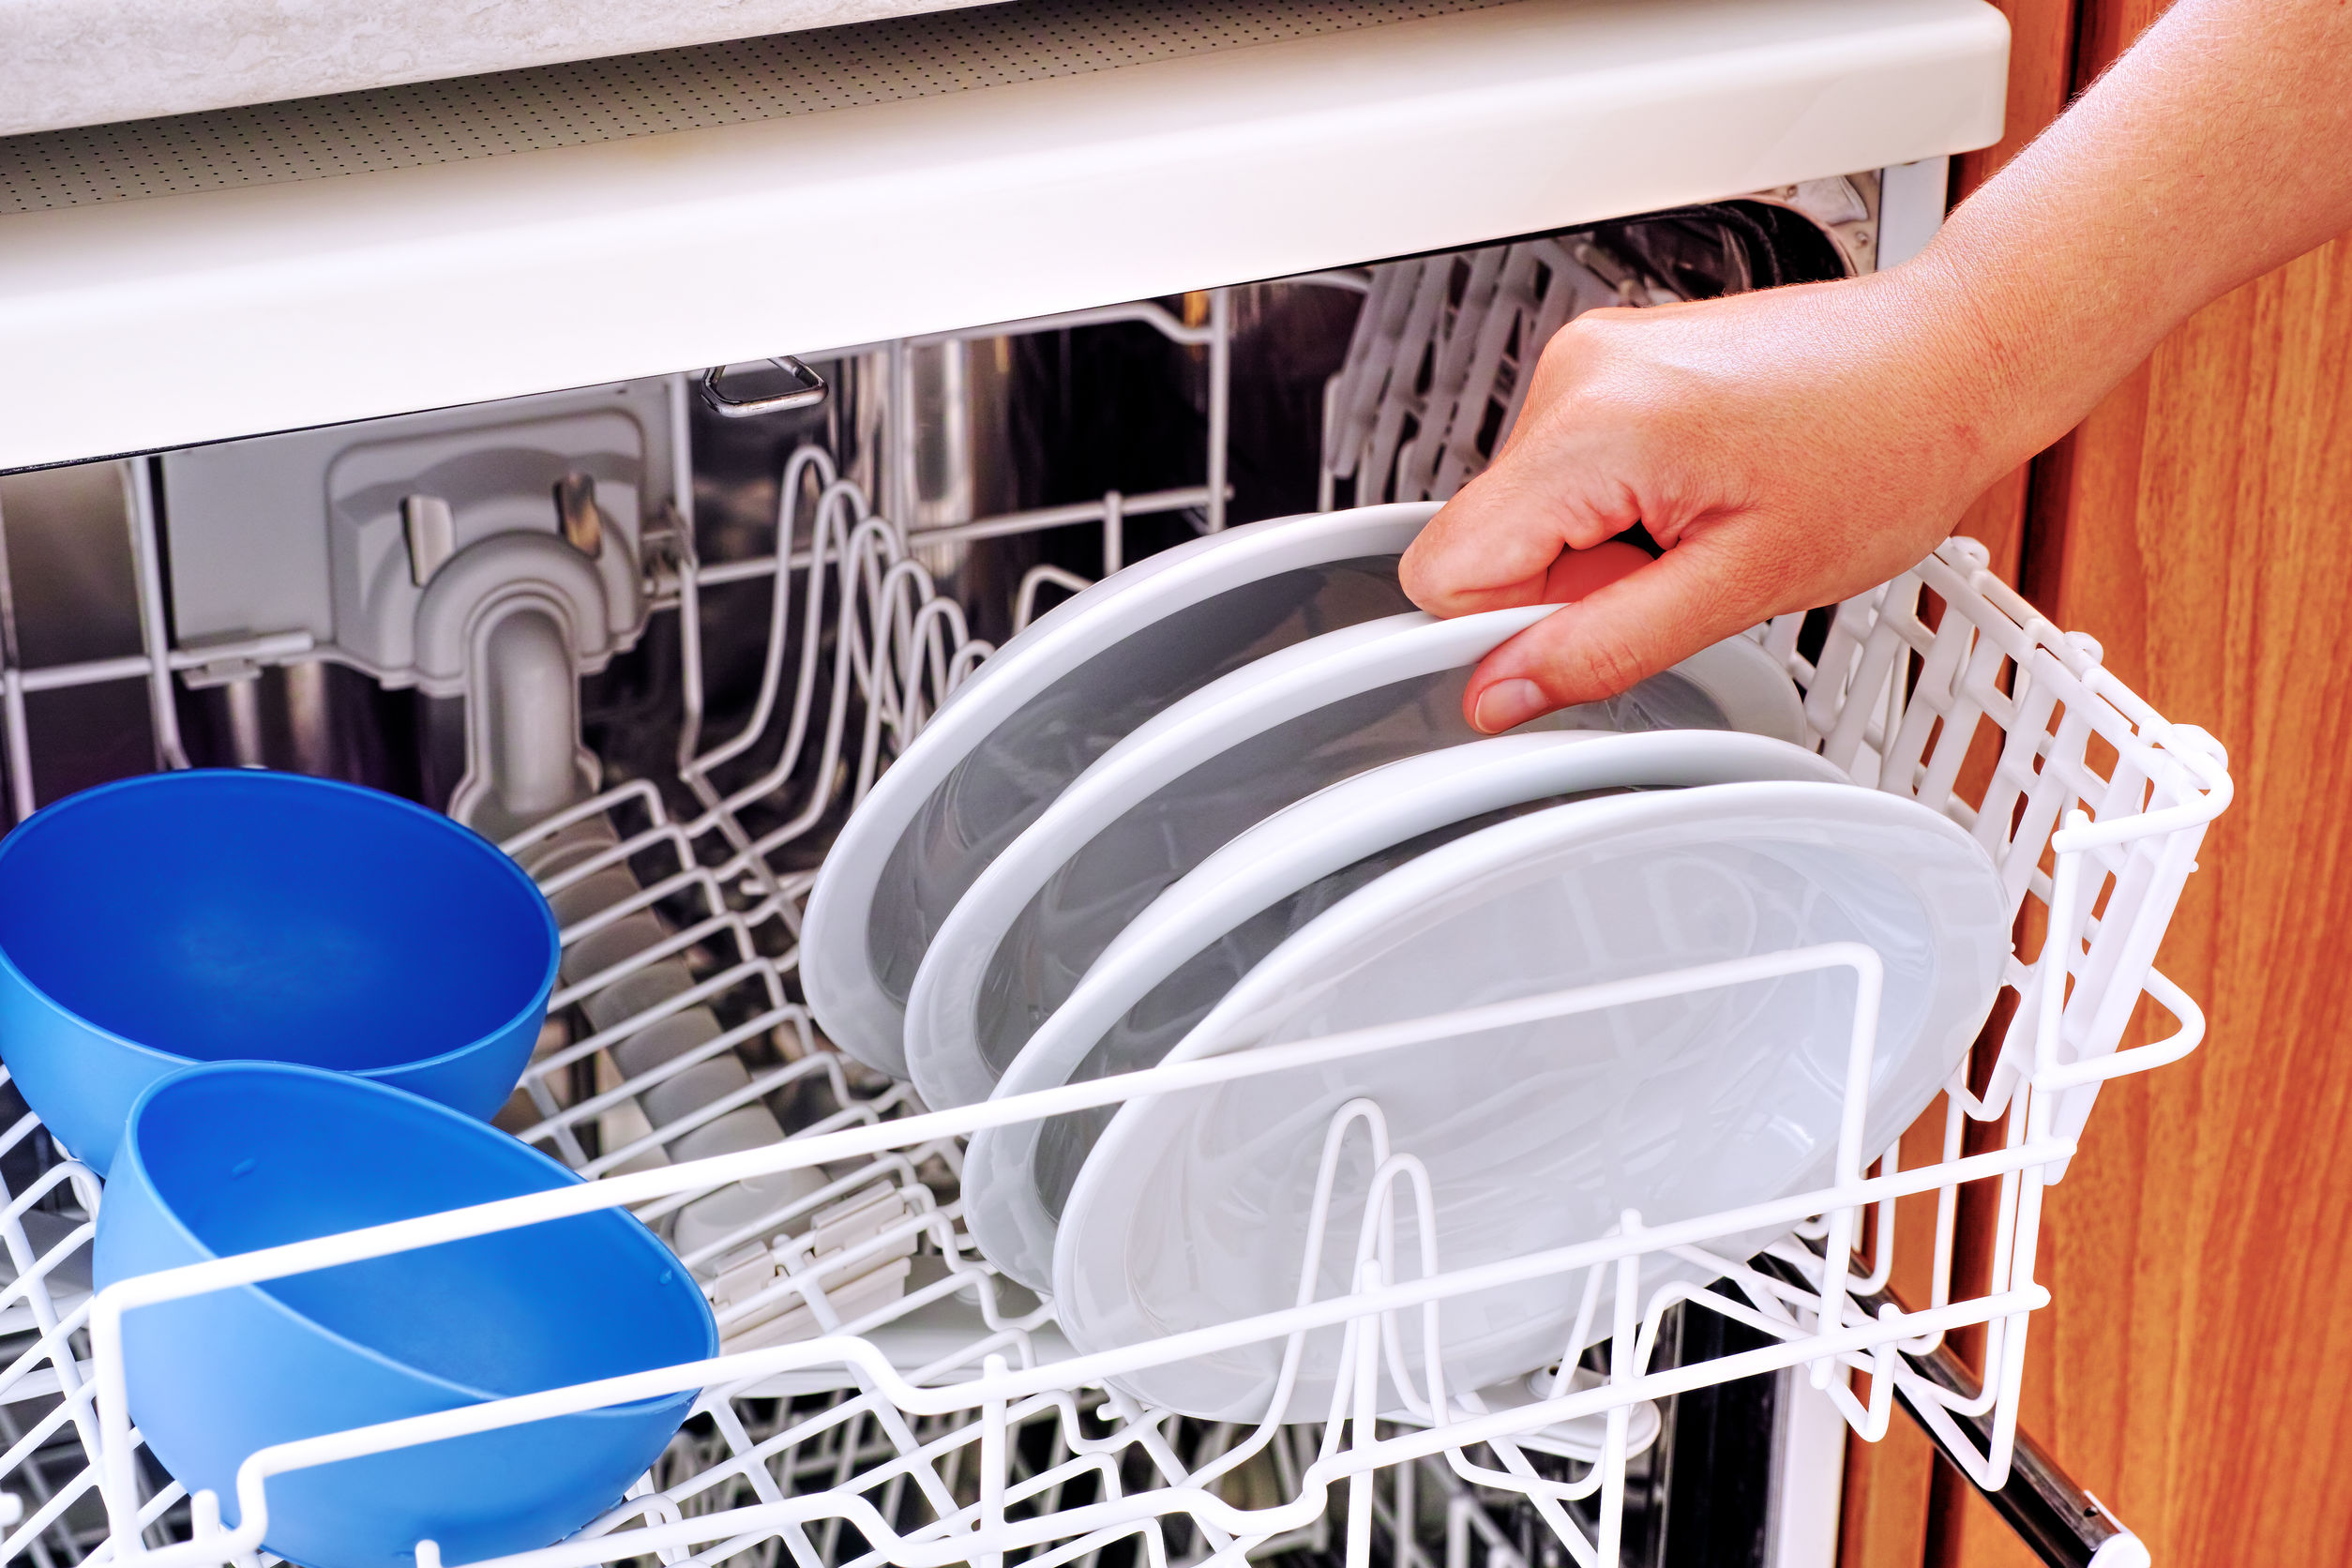 Woman hand take plate from dishwasher